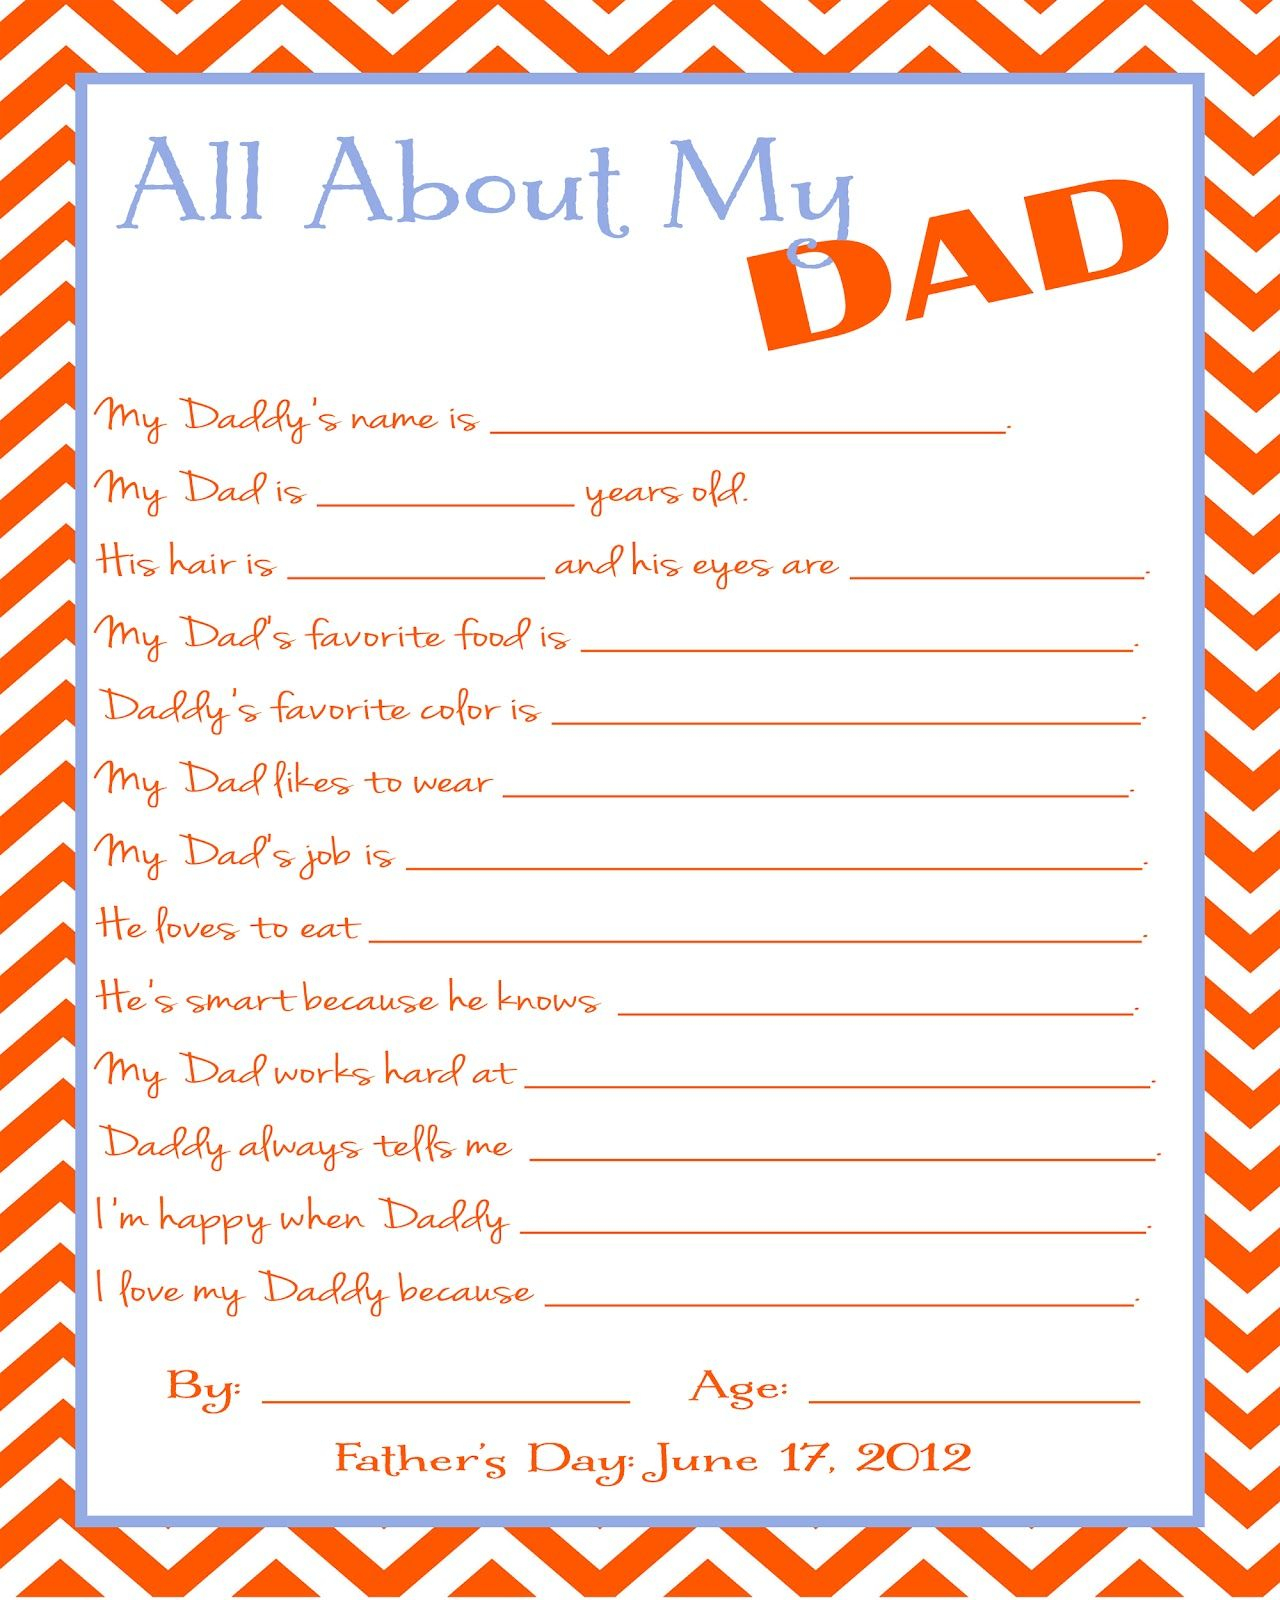 Free Father's Day Printable Questionnaire | Two Journeys : One Life - Free Printable Dad Questionnaire